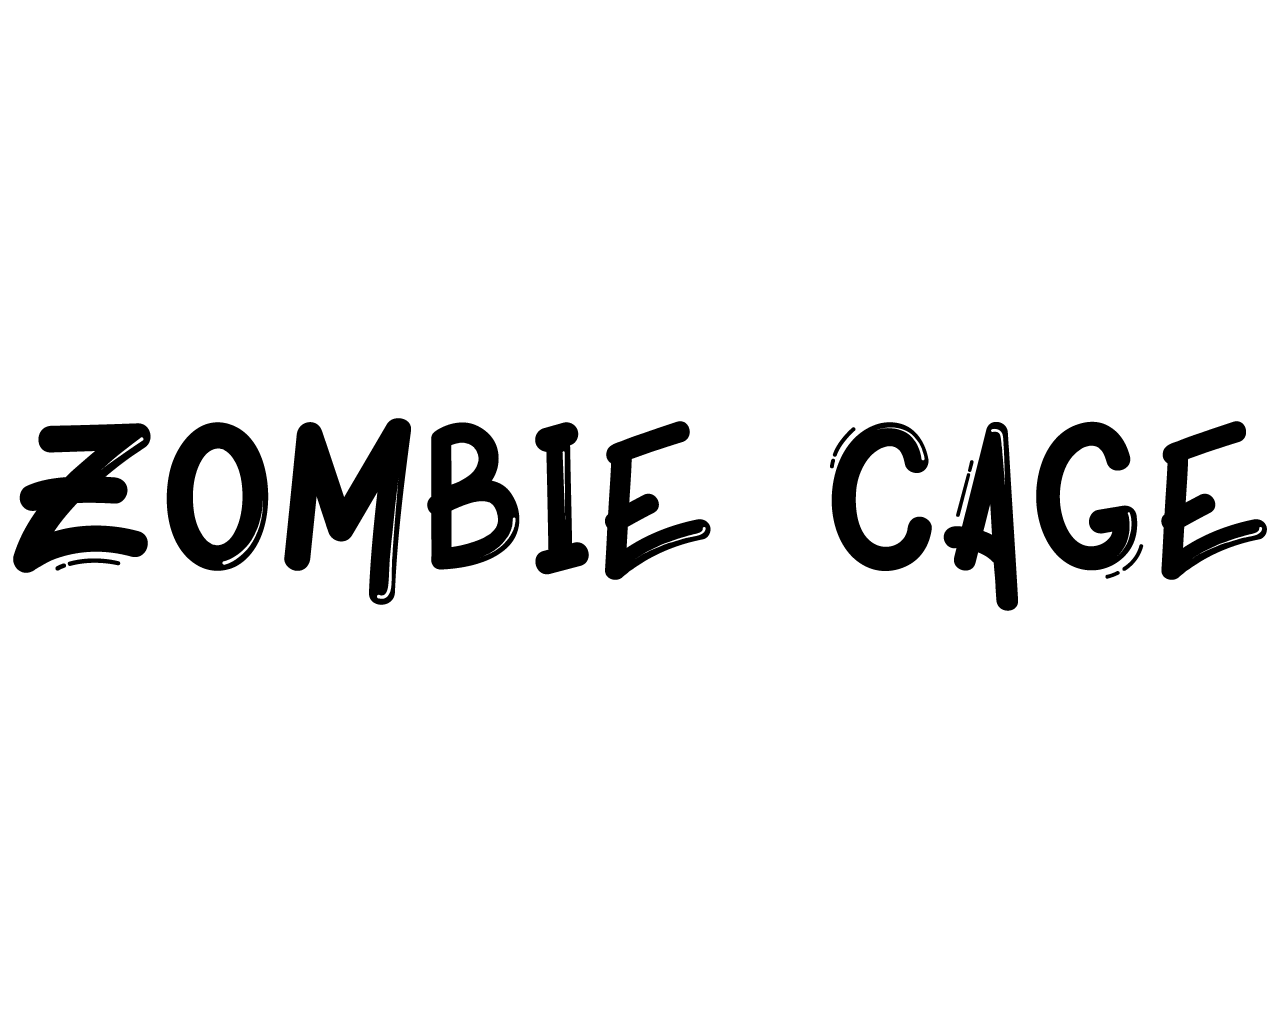 ZOMBIE_CAGE_HEADING_2.png